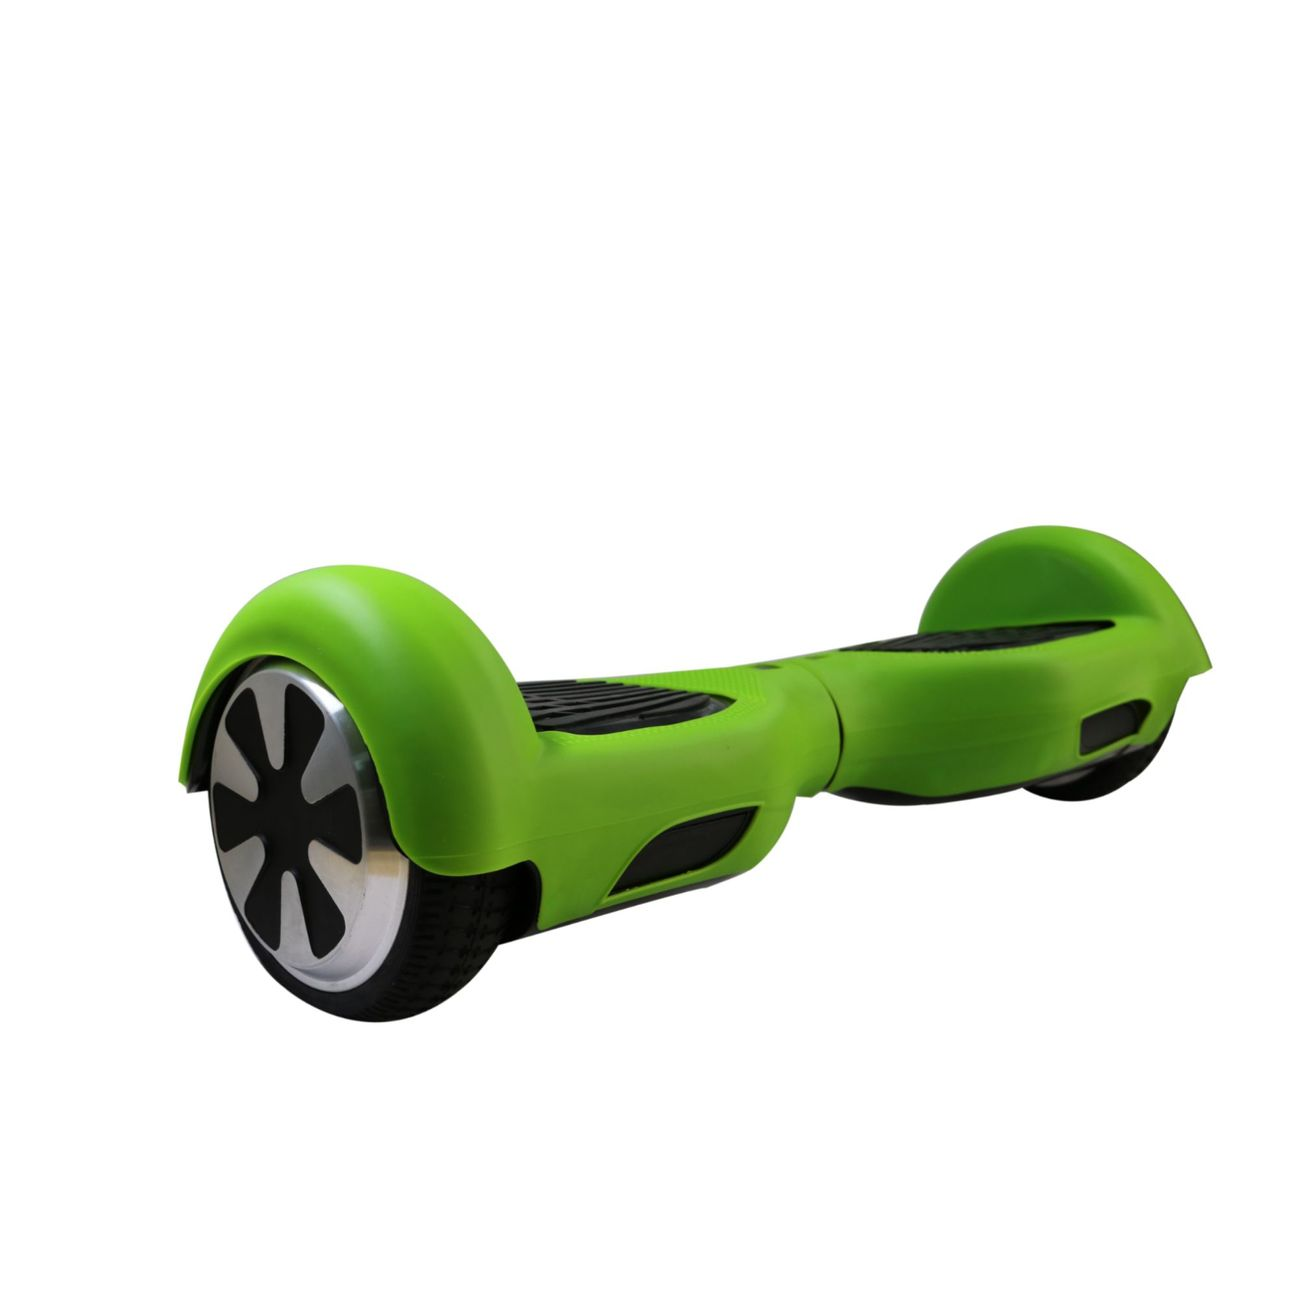 Housse en silicone protection int grale vert gyropode for Housse hoverboard